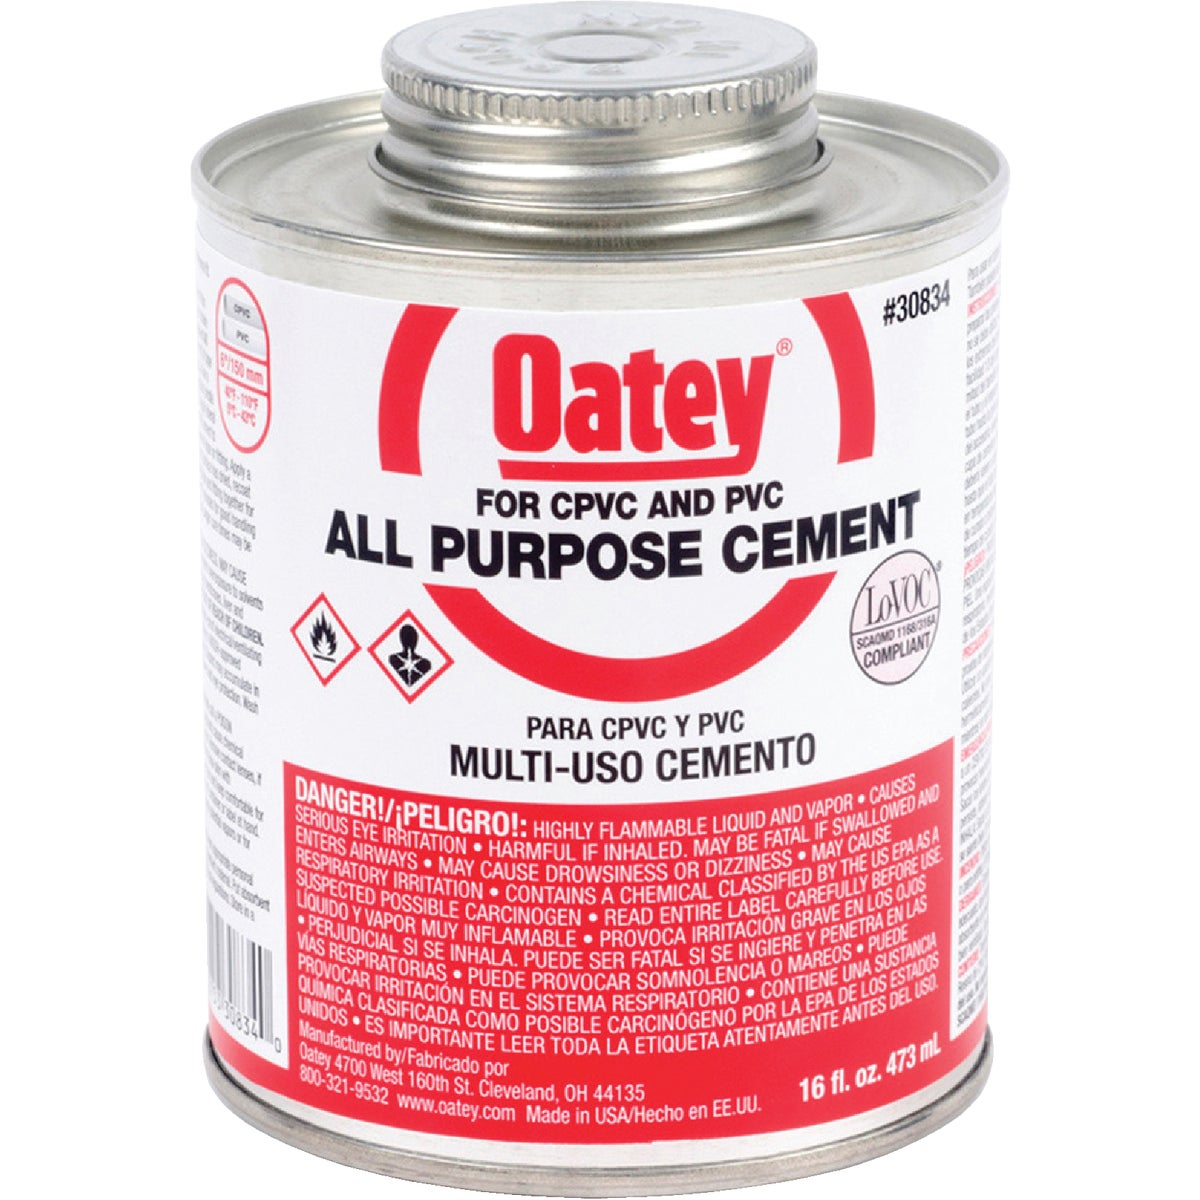 PINT ALL-PURPOSE CEMENT - 30834 by Oatey Scs